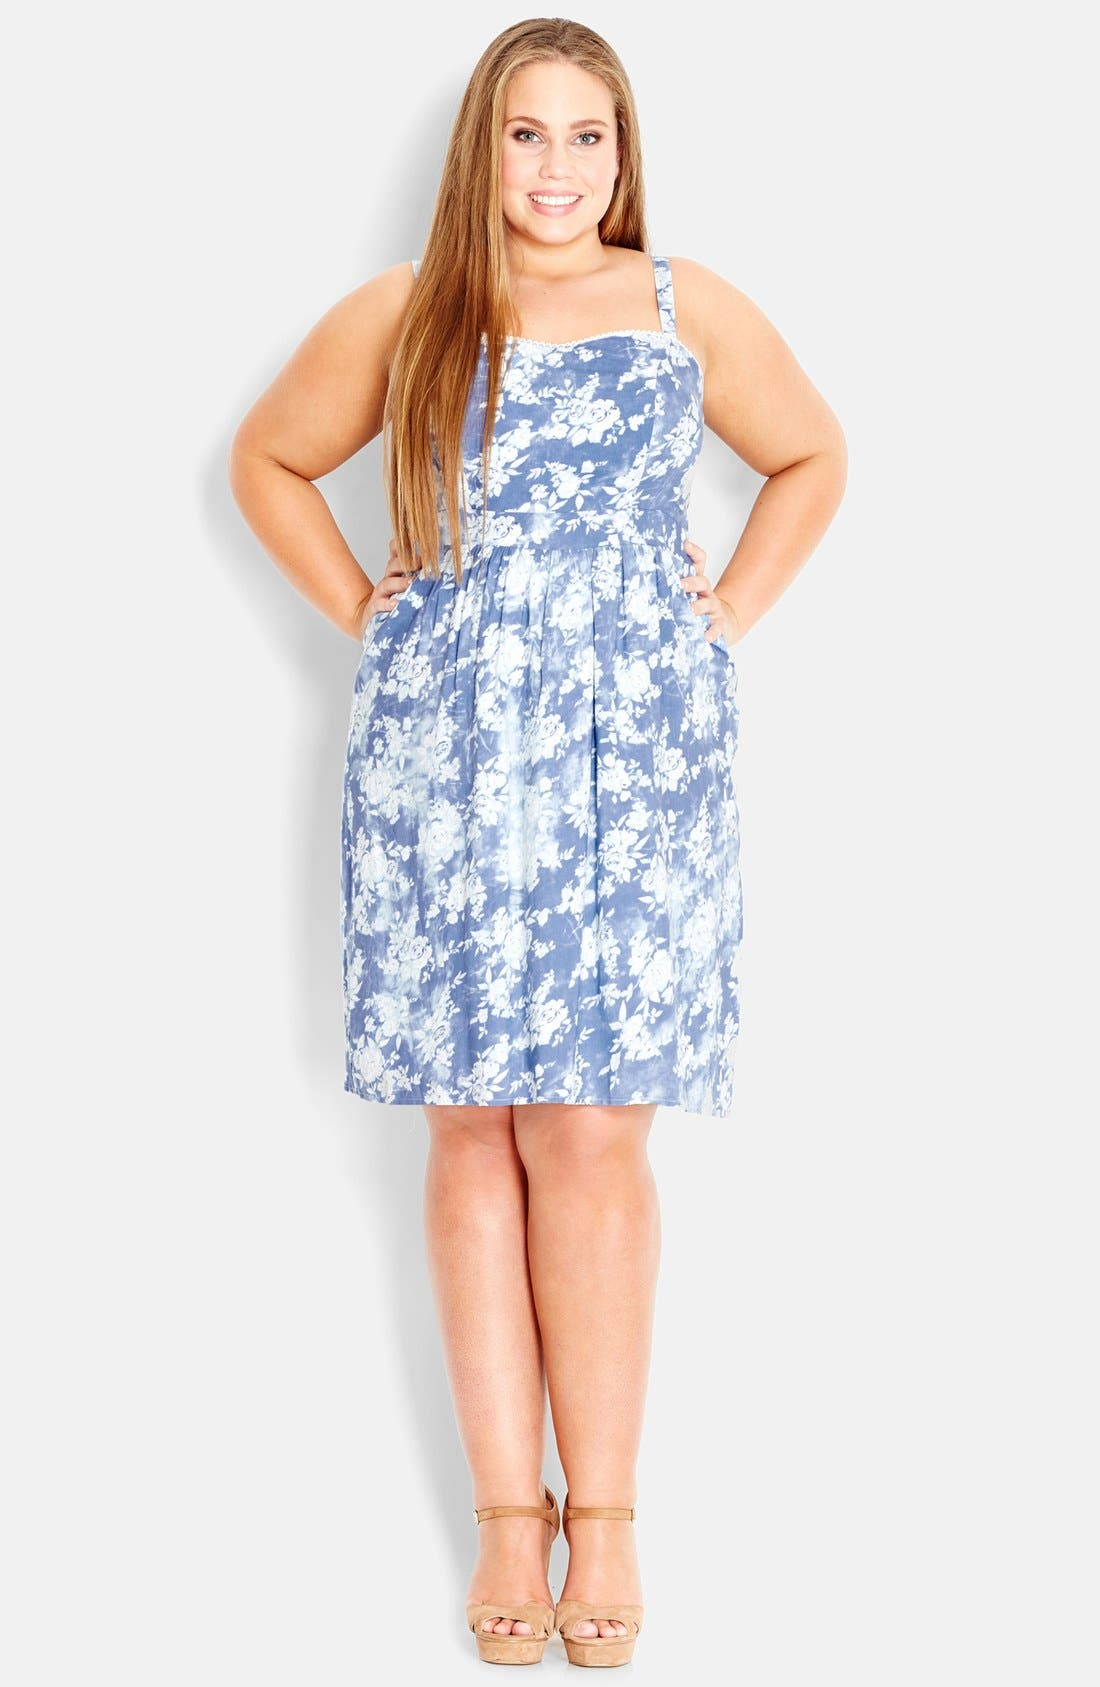 Alternate Image 1 Selected - City Chic Print Chambray Sundress (Plus Size)